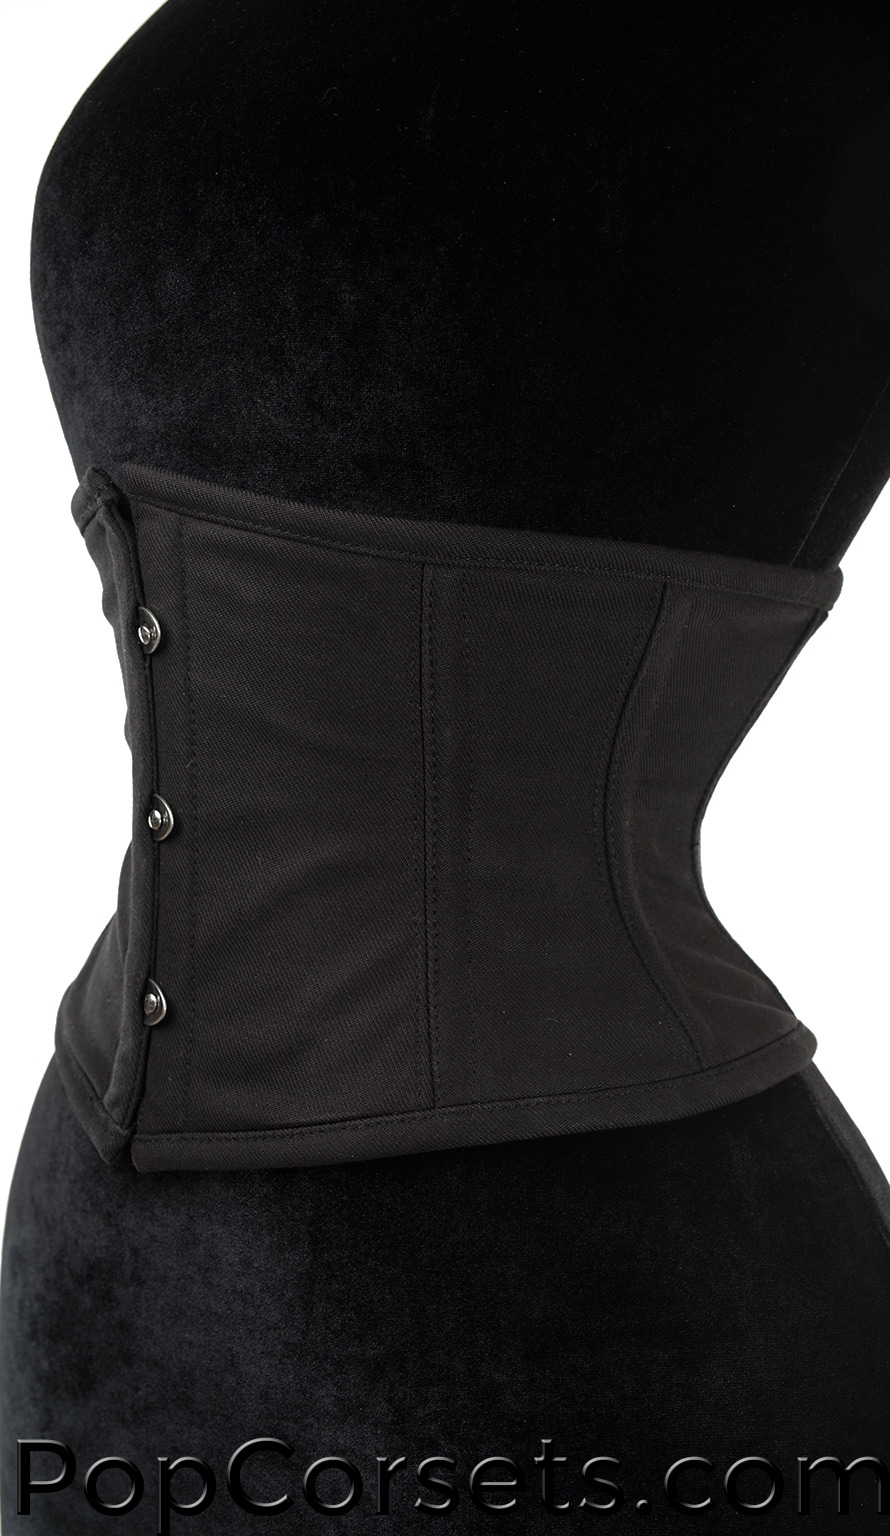 Black Cotton Waist Cincher